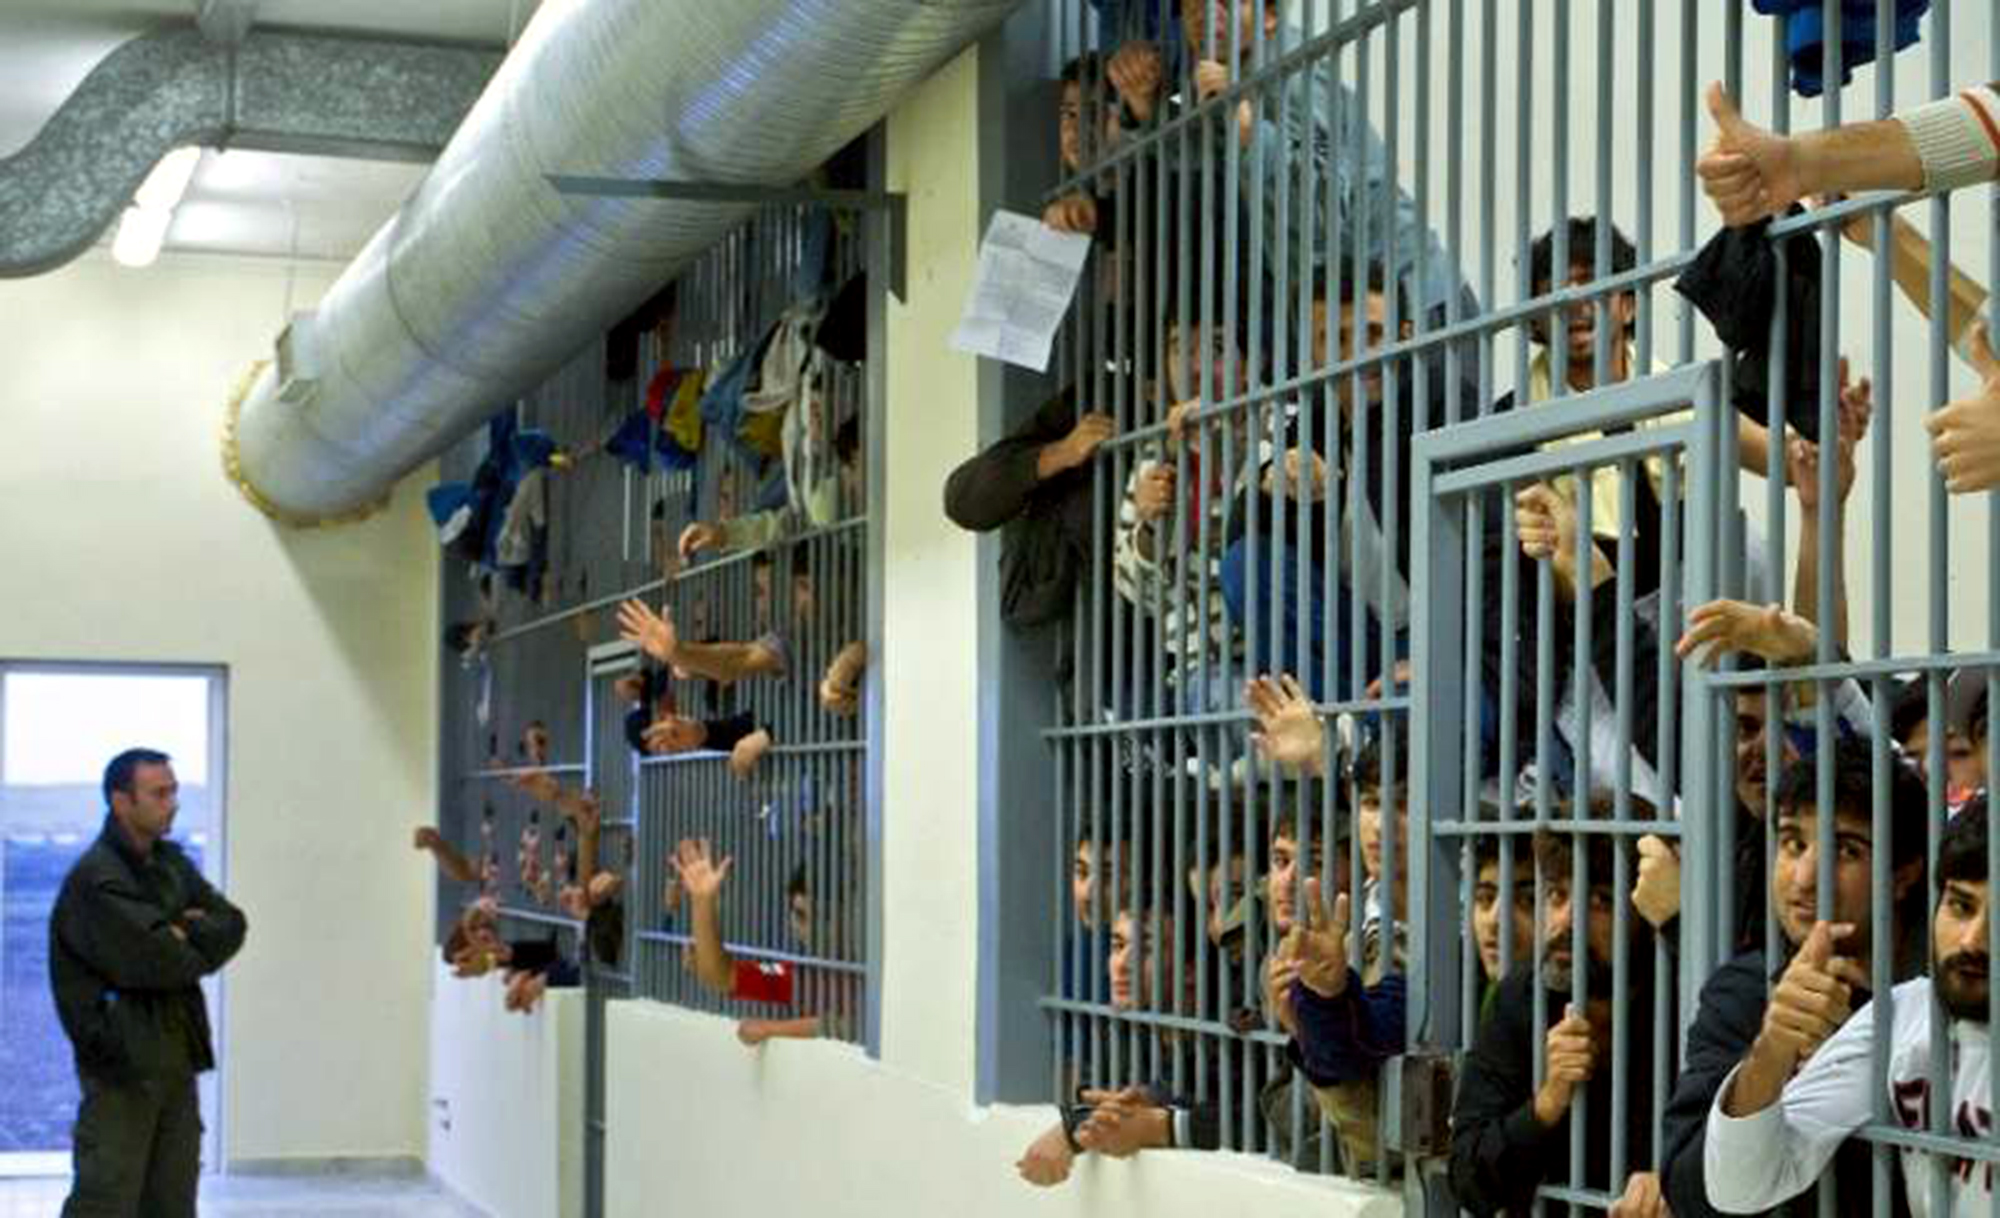 T:Controversial solutions for Romania's overcrowded prisons